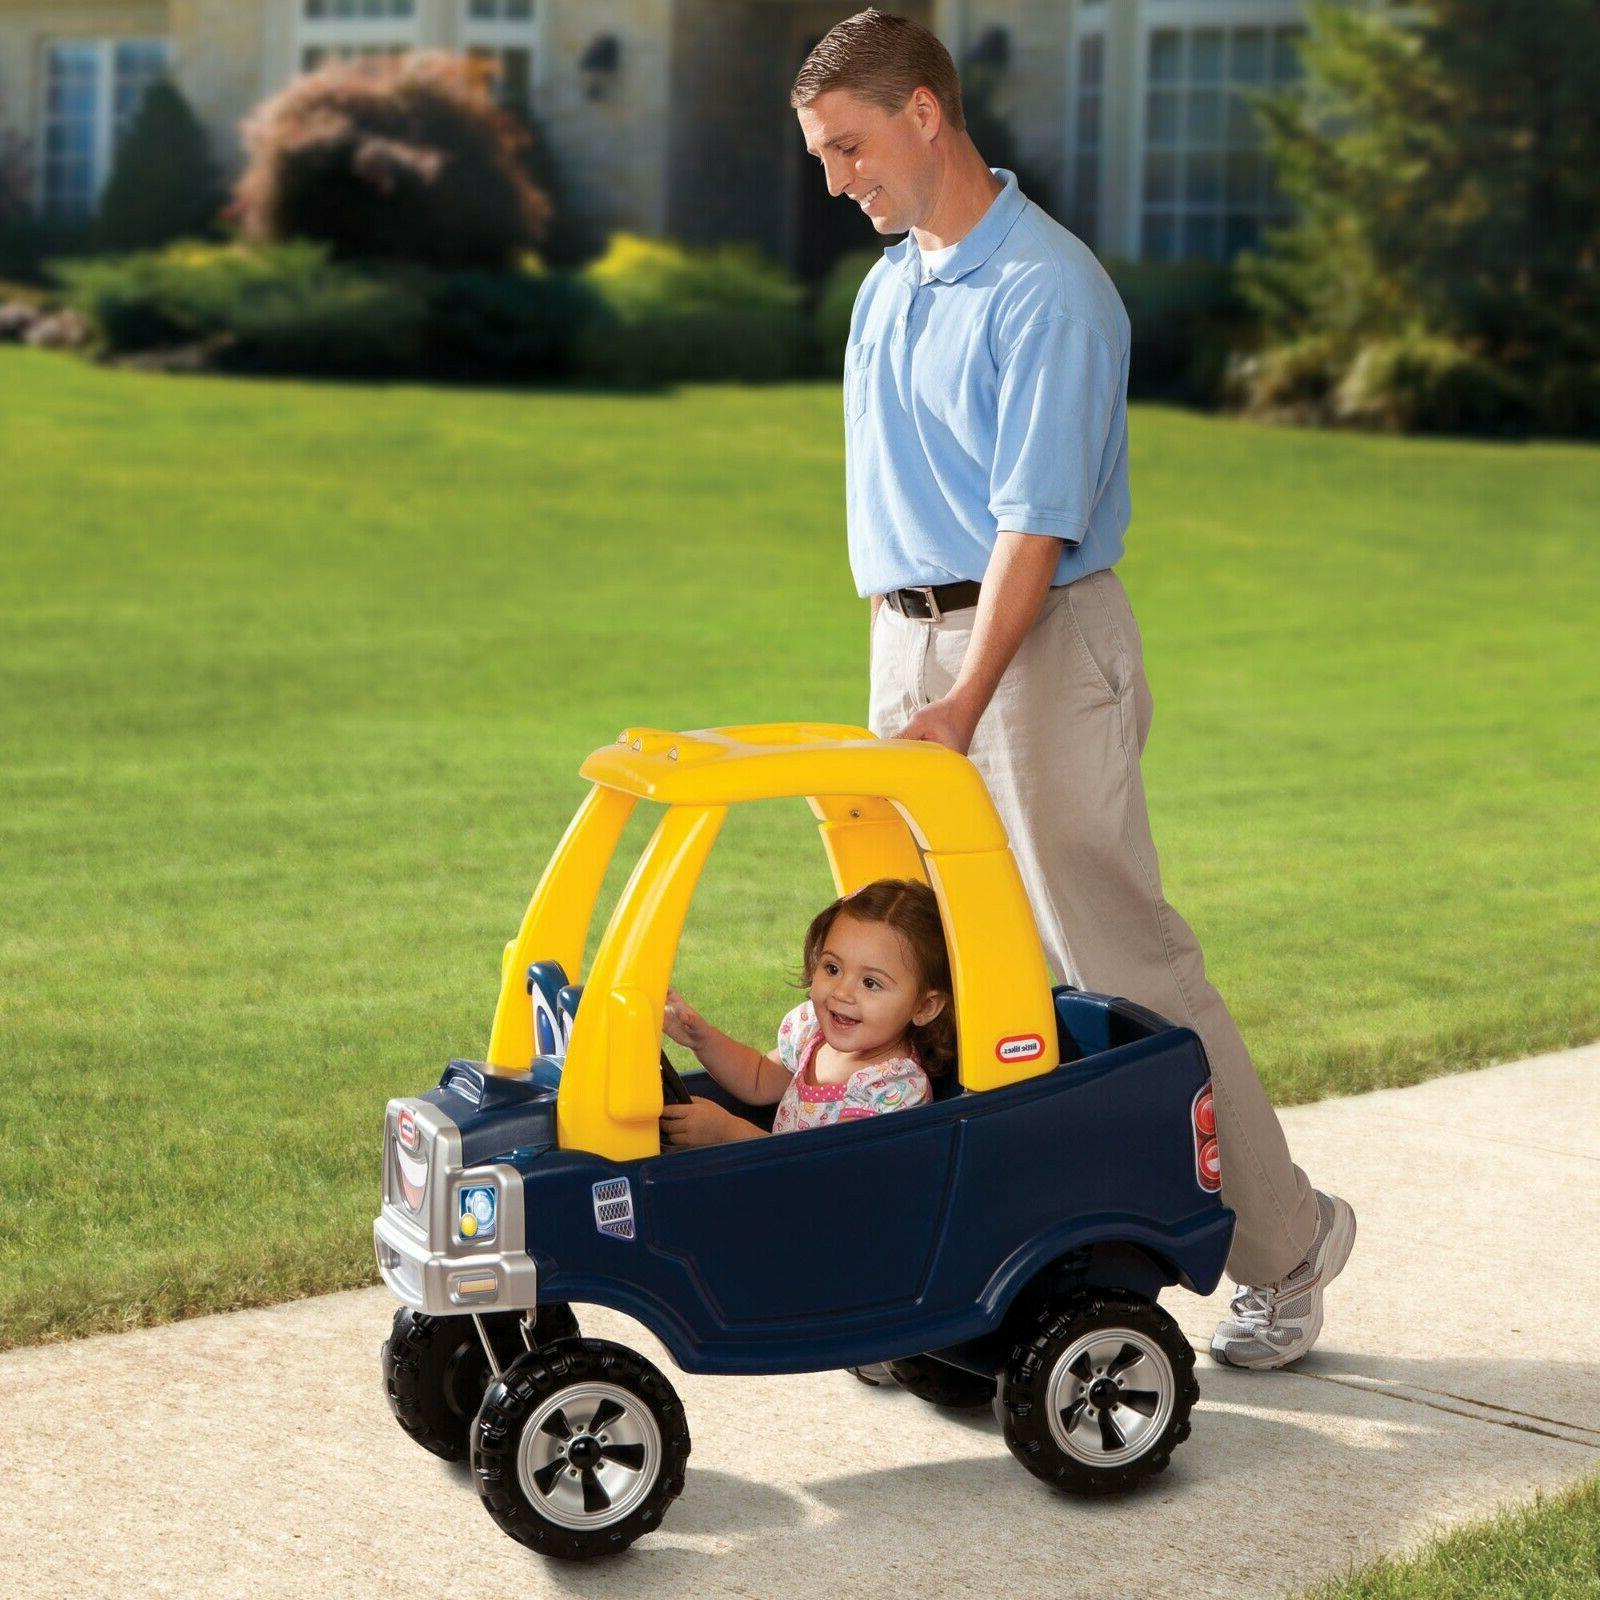 Ride Toy Kids Toddler Child Drive